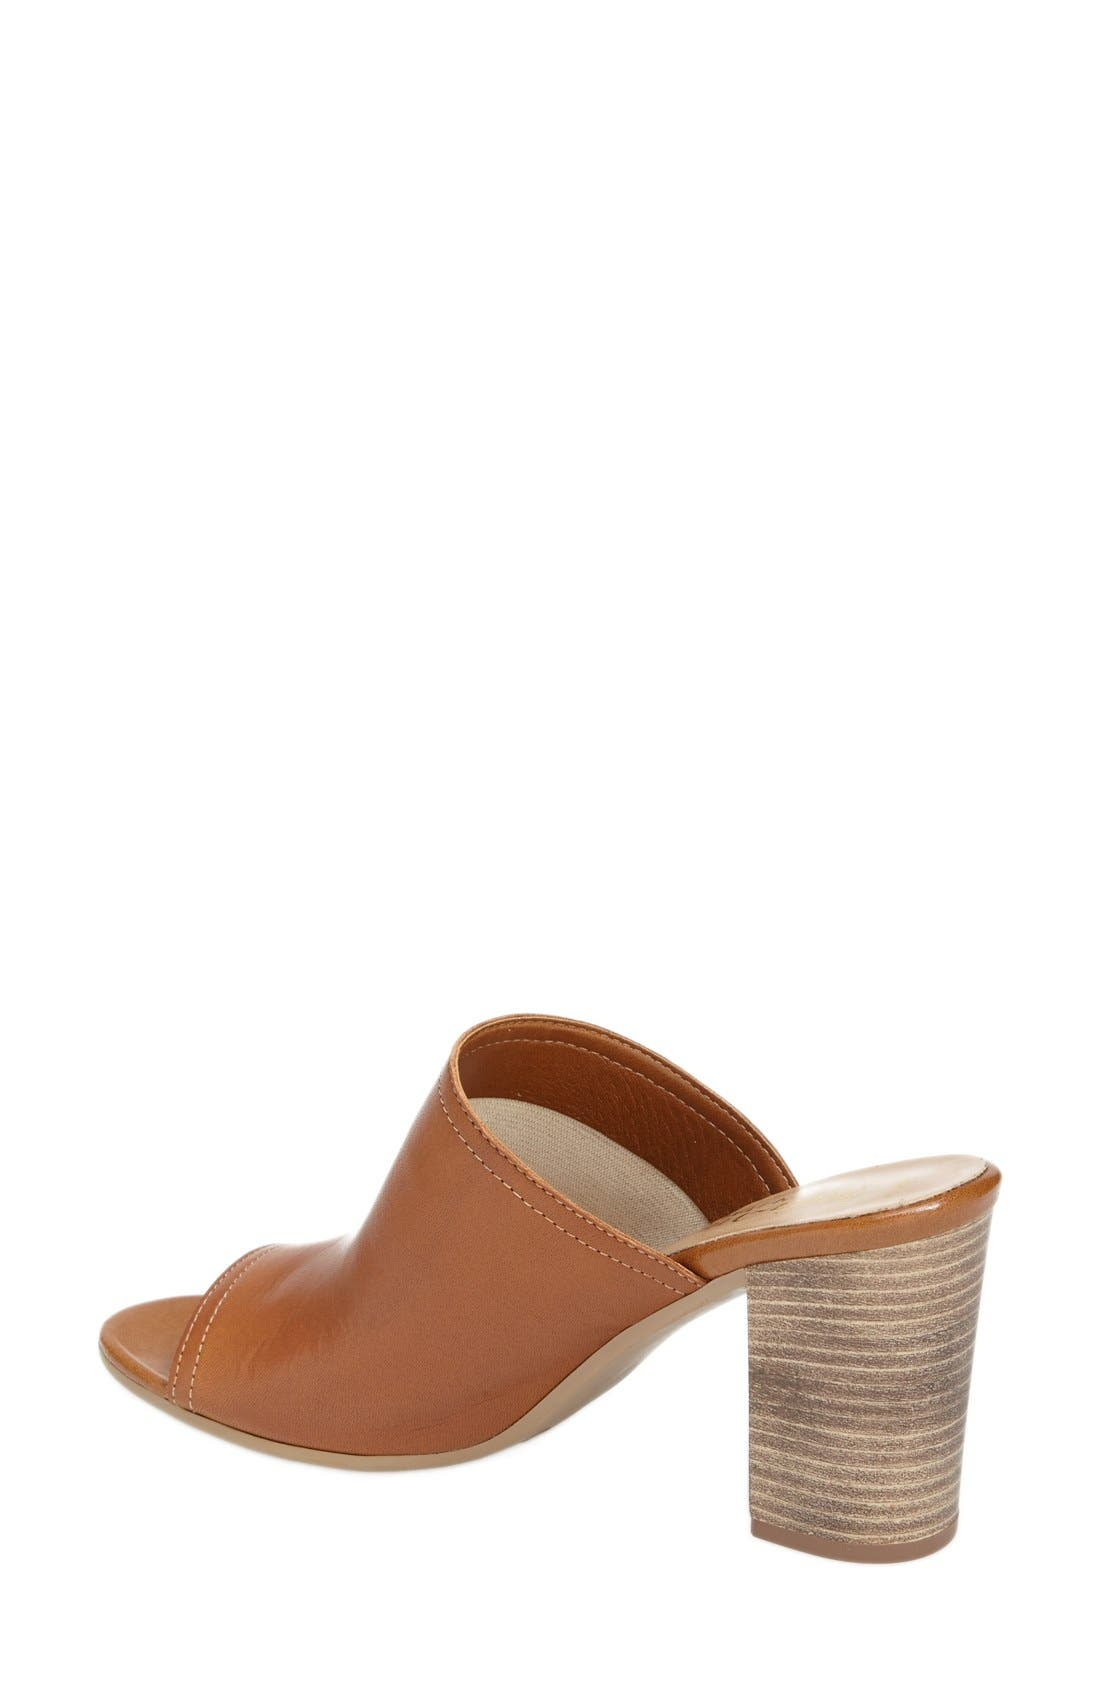 'Arno' Leather Mule,                             Alternate thumbnail 17, color,